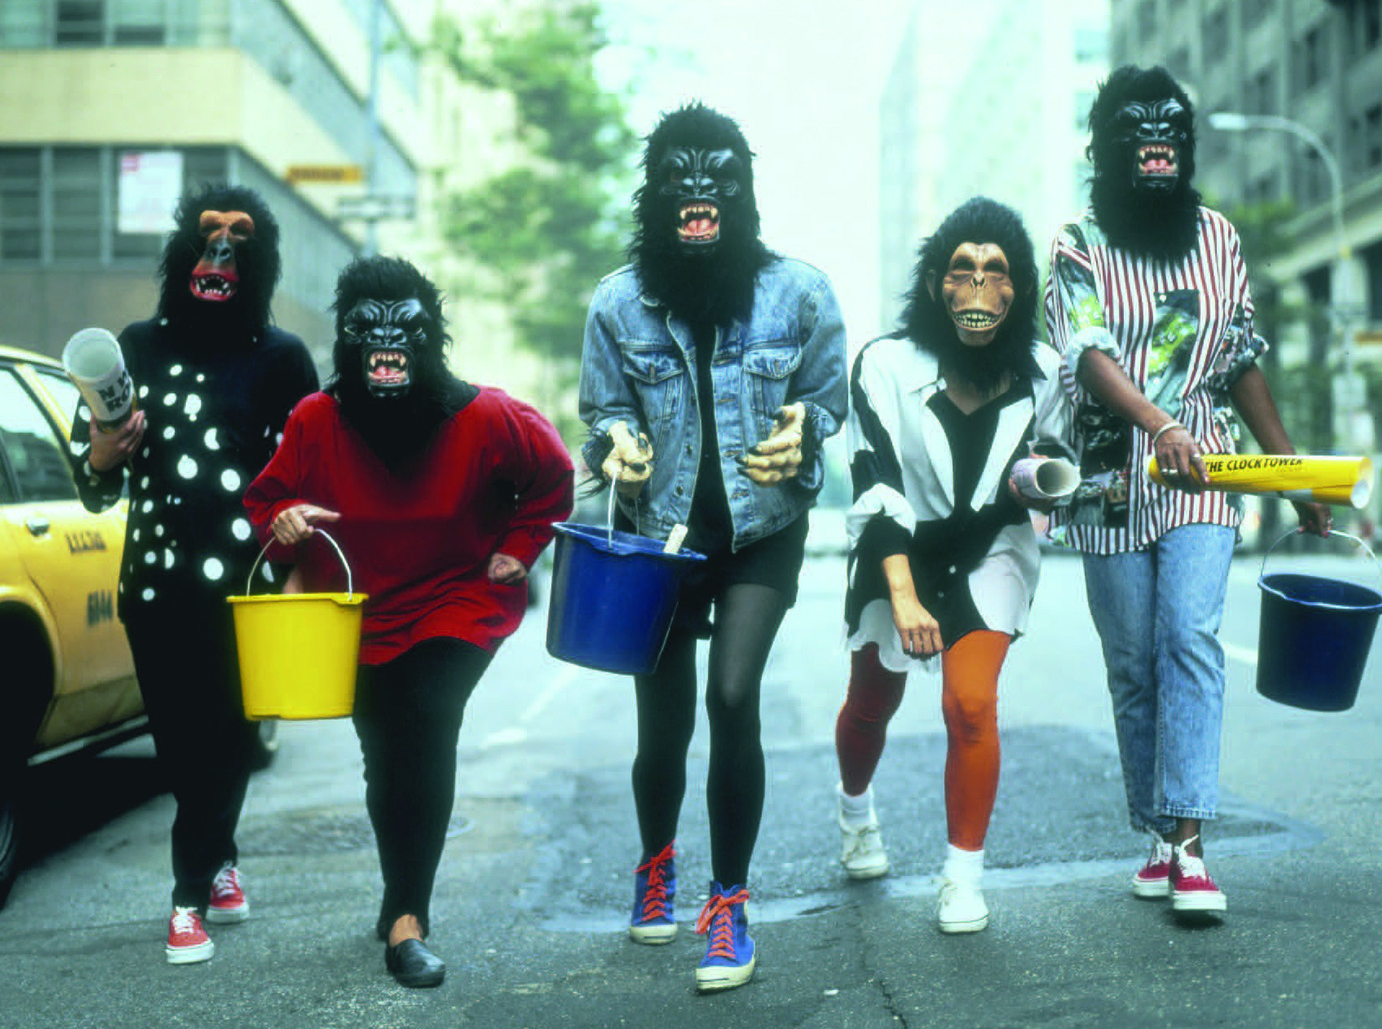 Guerrilla Girls running with brushes and glue, late 1980s. Courtesy: the artists